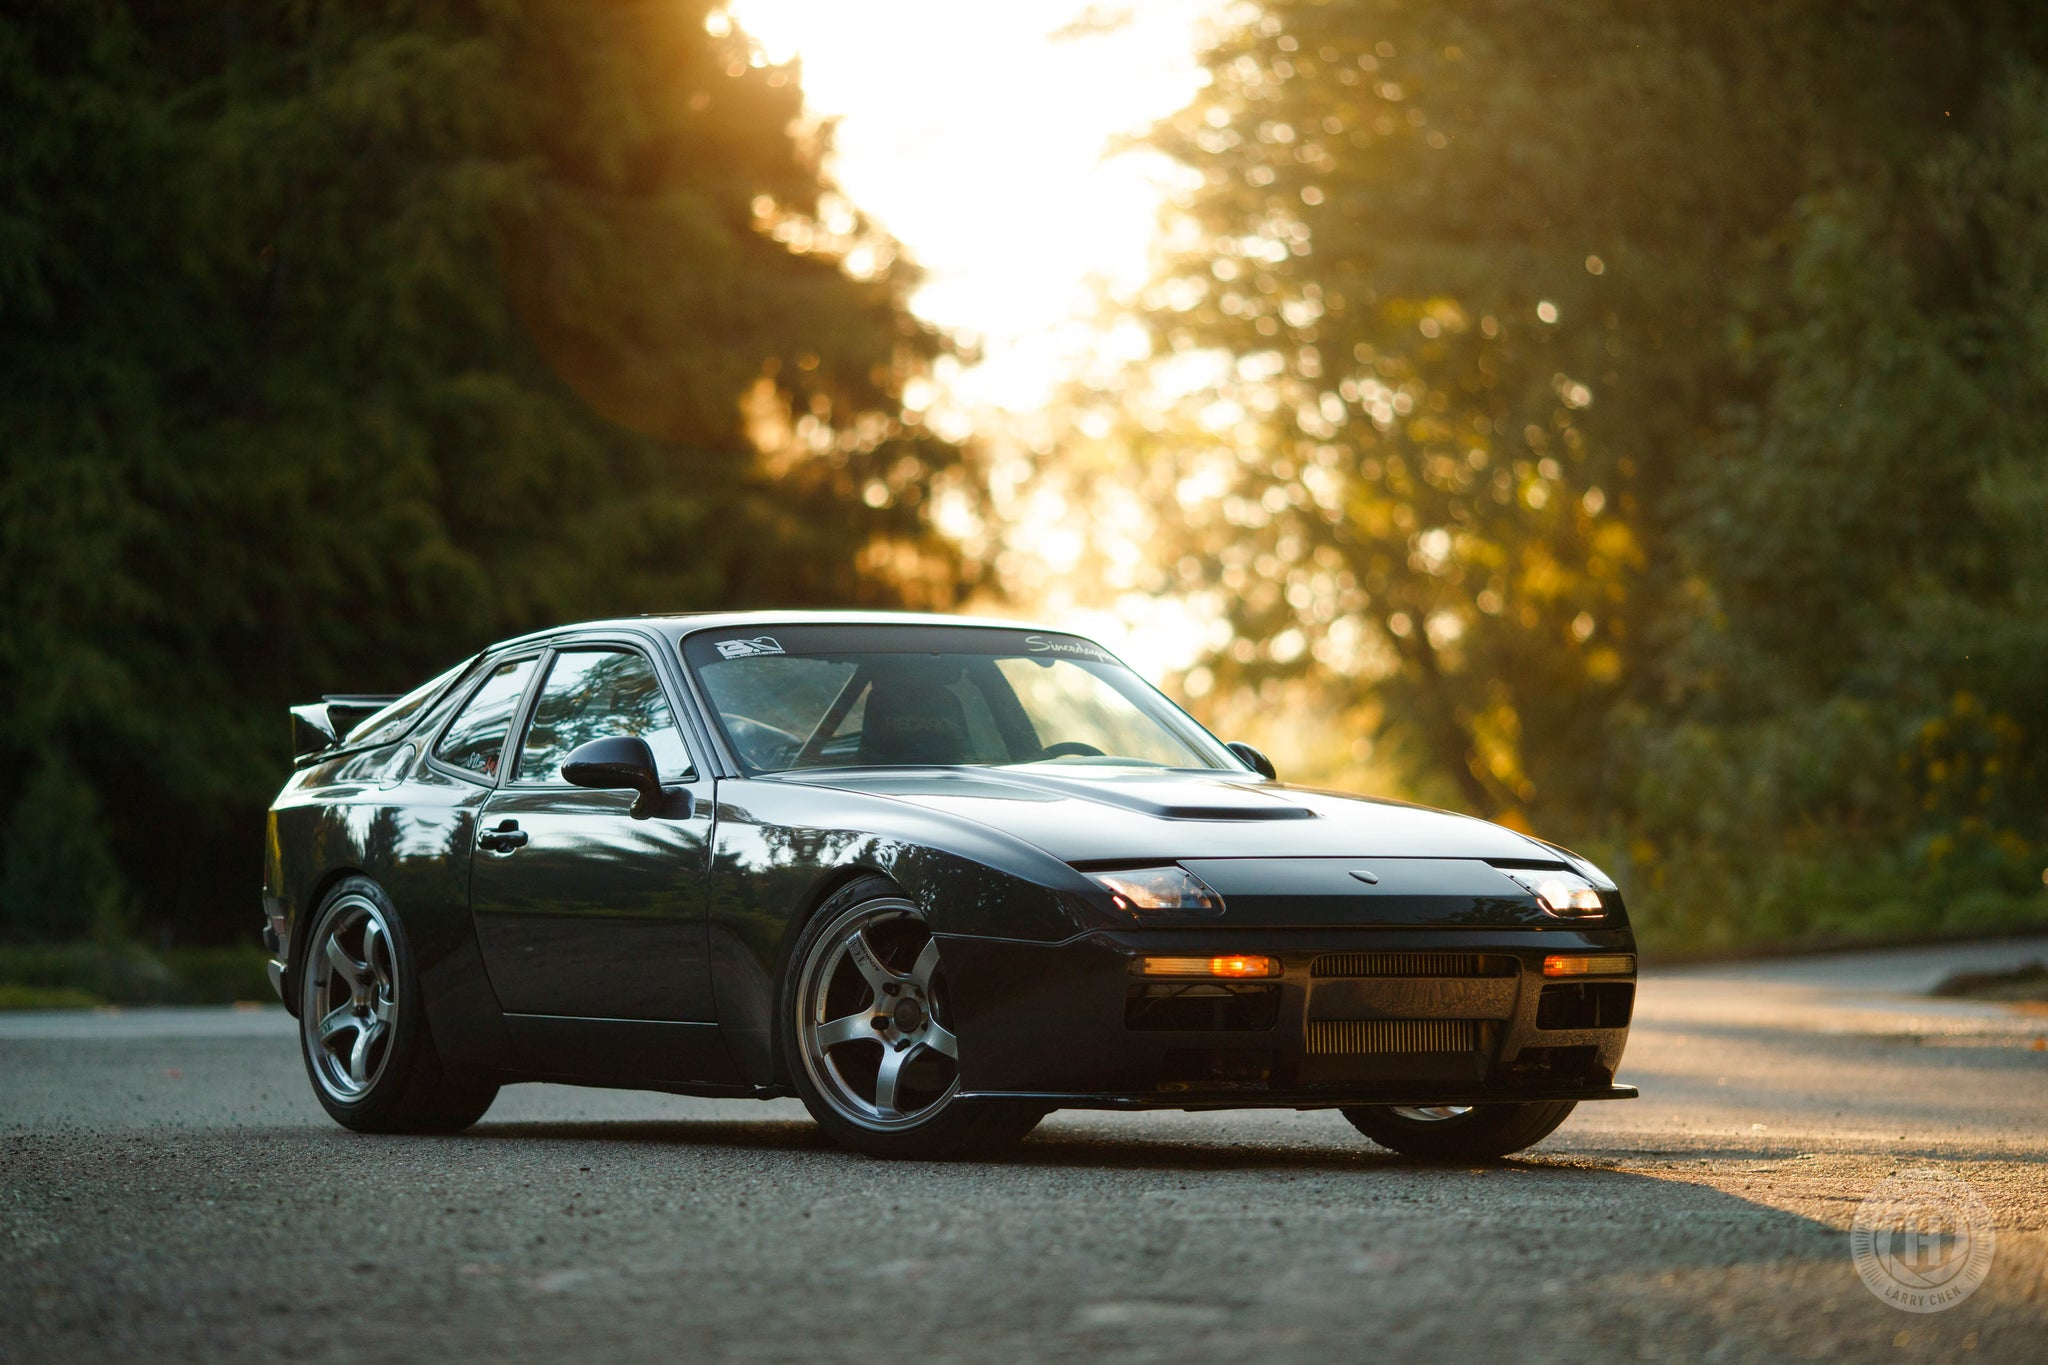 KL'ing It – Mazda KL-ZE-Swapped Porsche 944